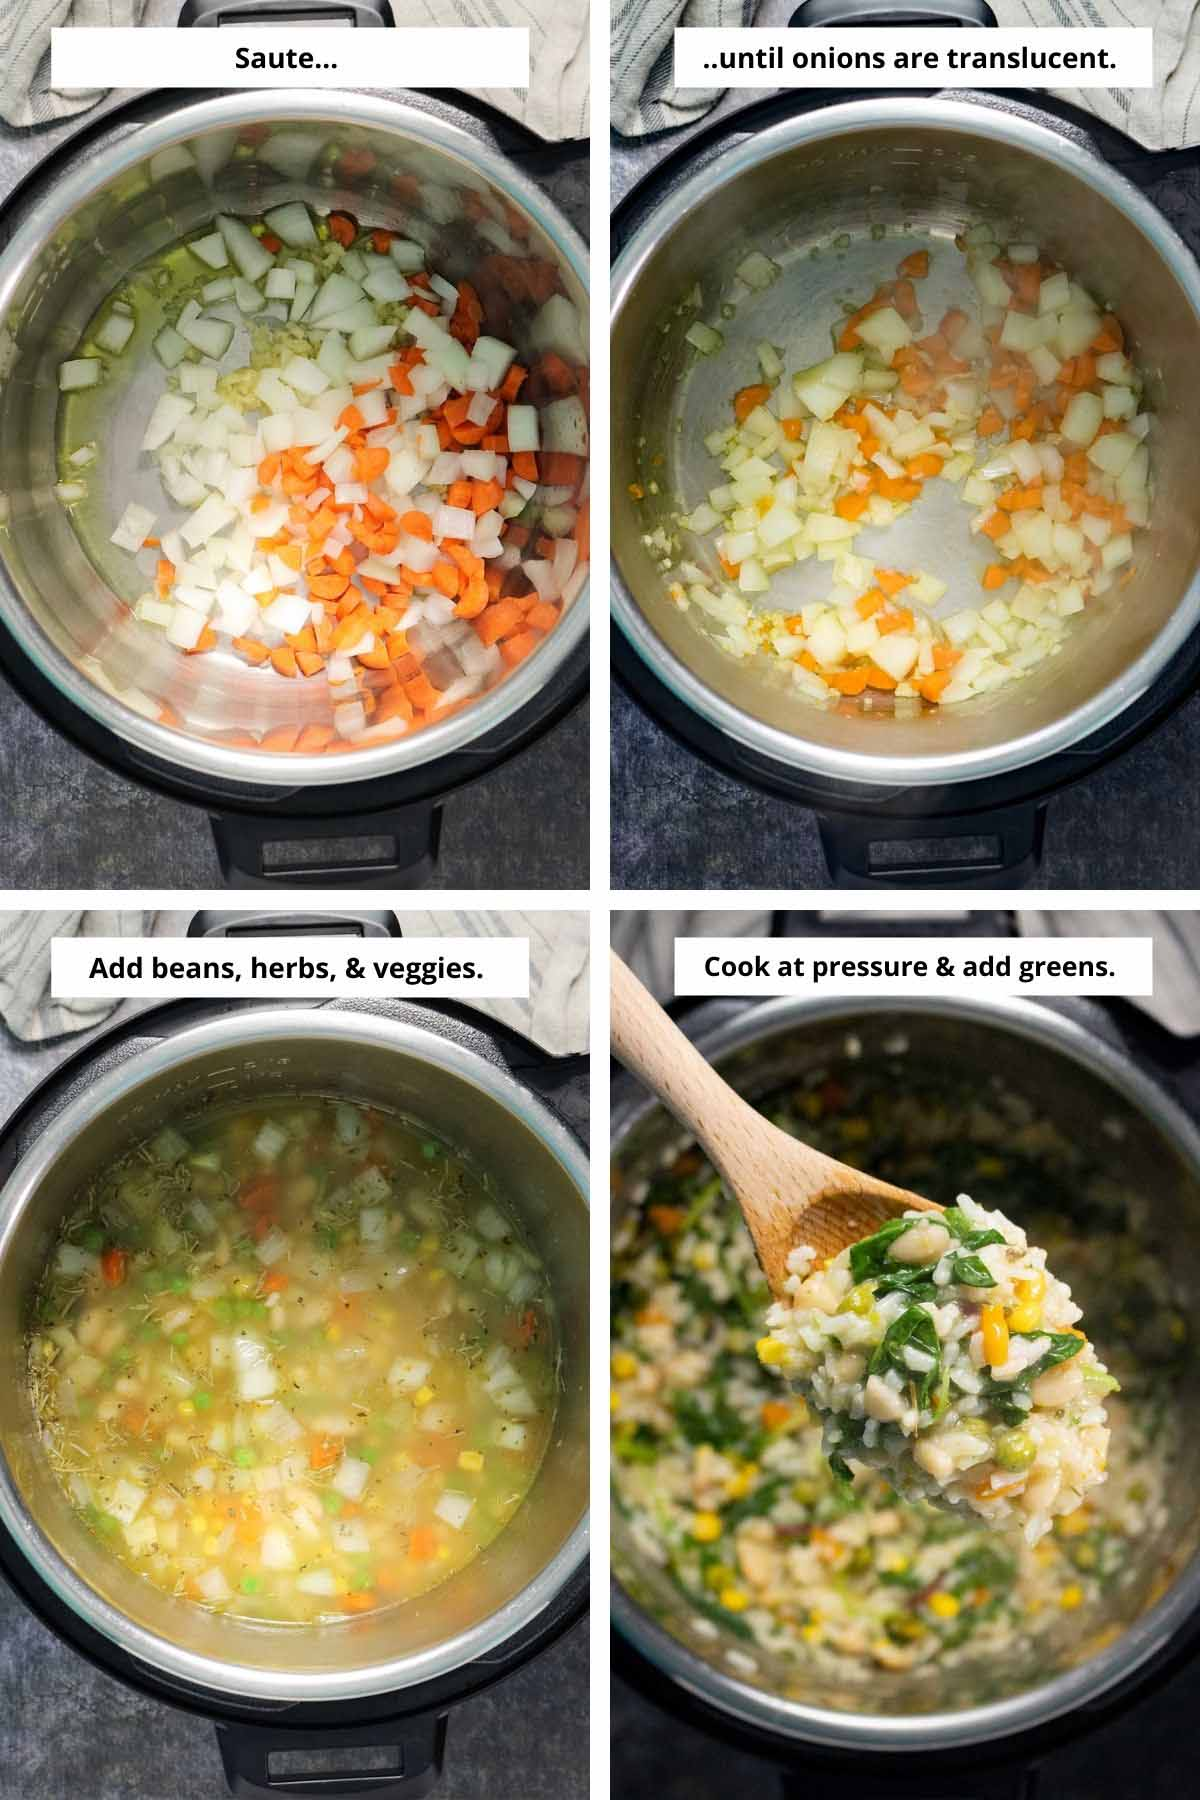 image collage showing onions before and after saute, then with broth and beans in the pot and after cooking